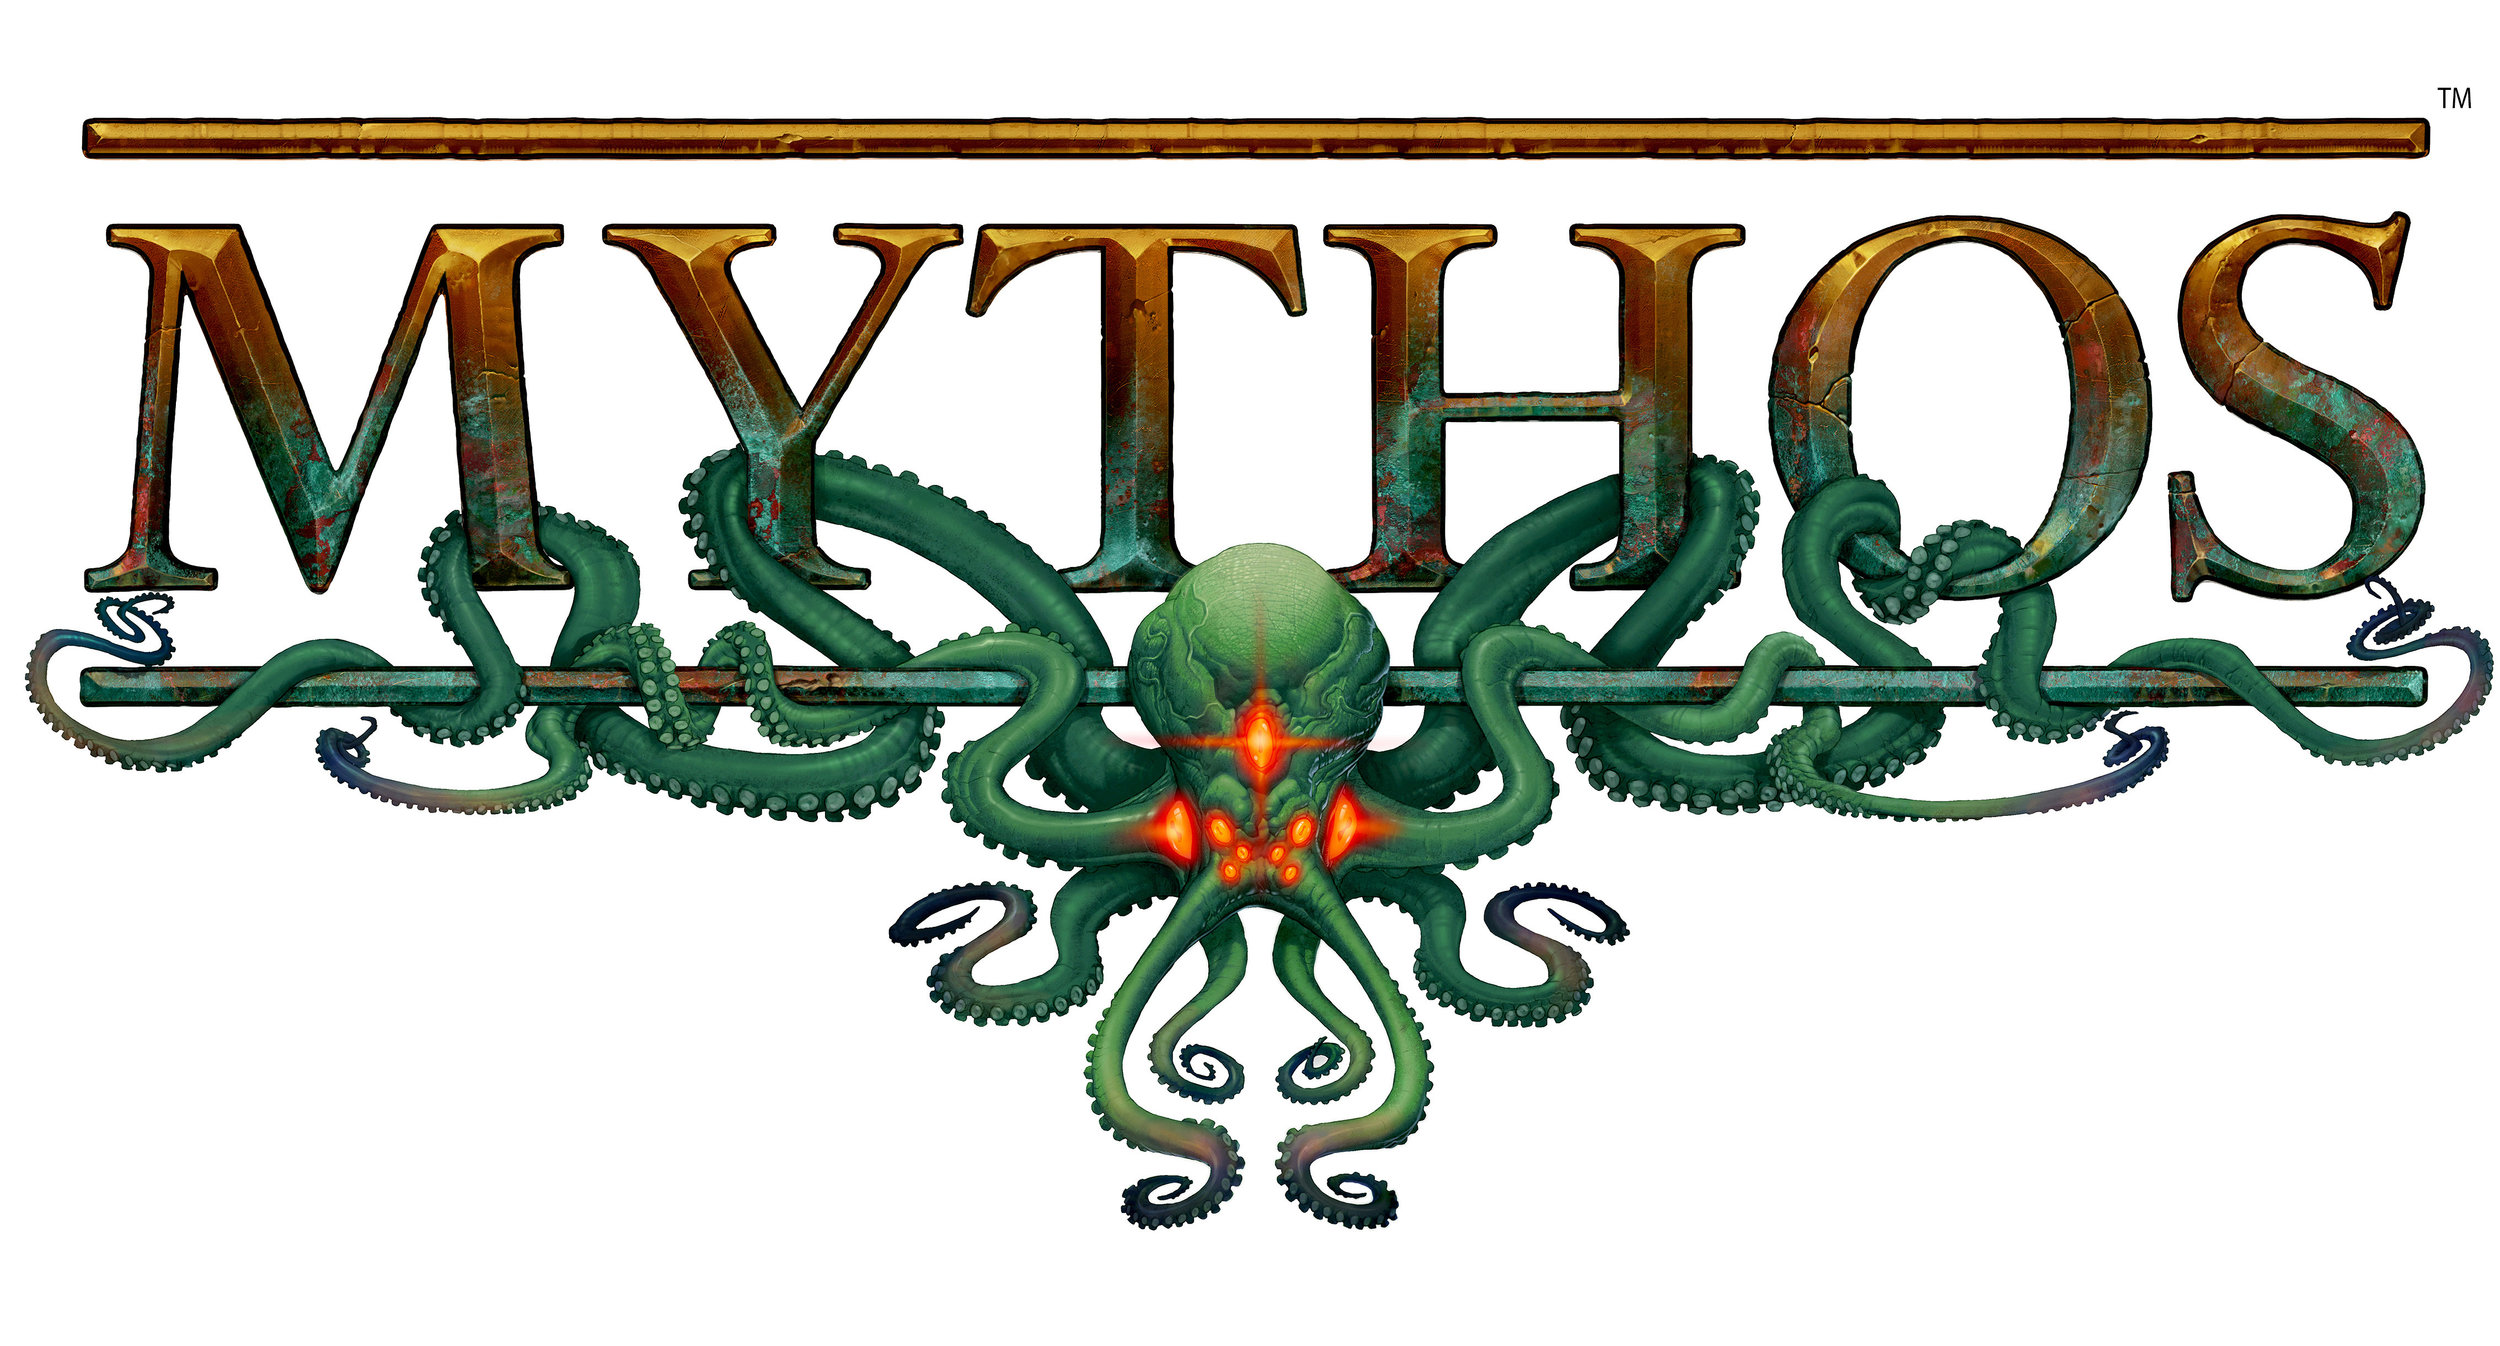 Mythos - coming to a tabletop near you in 2020!